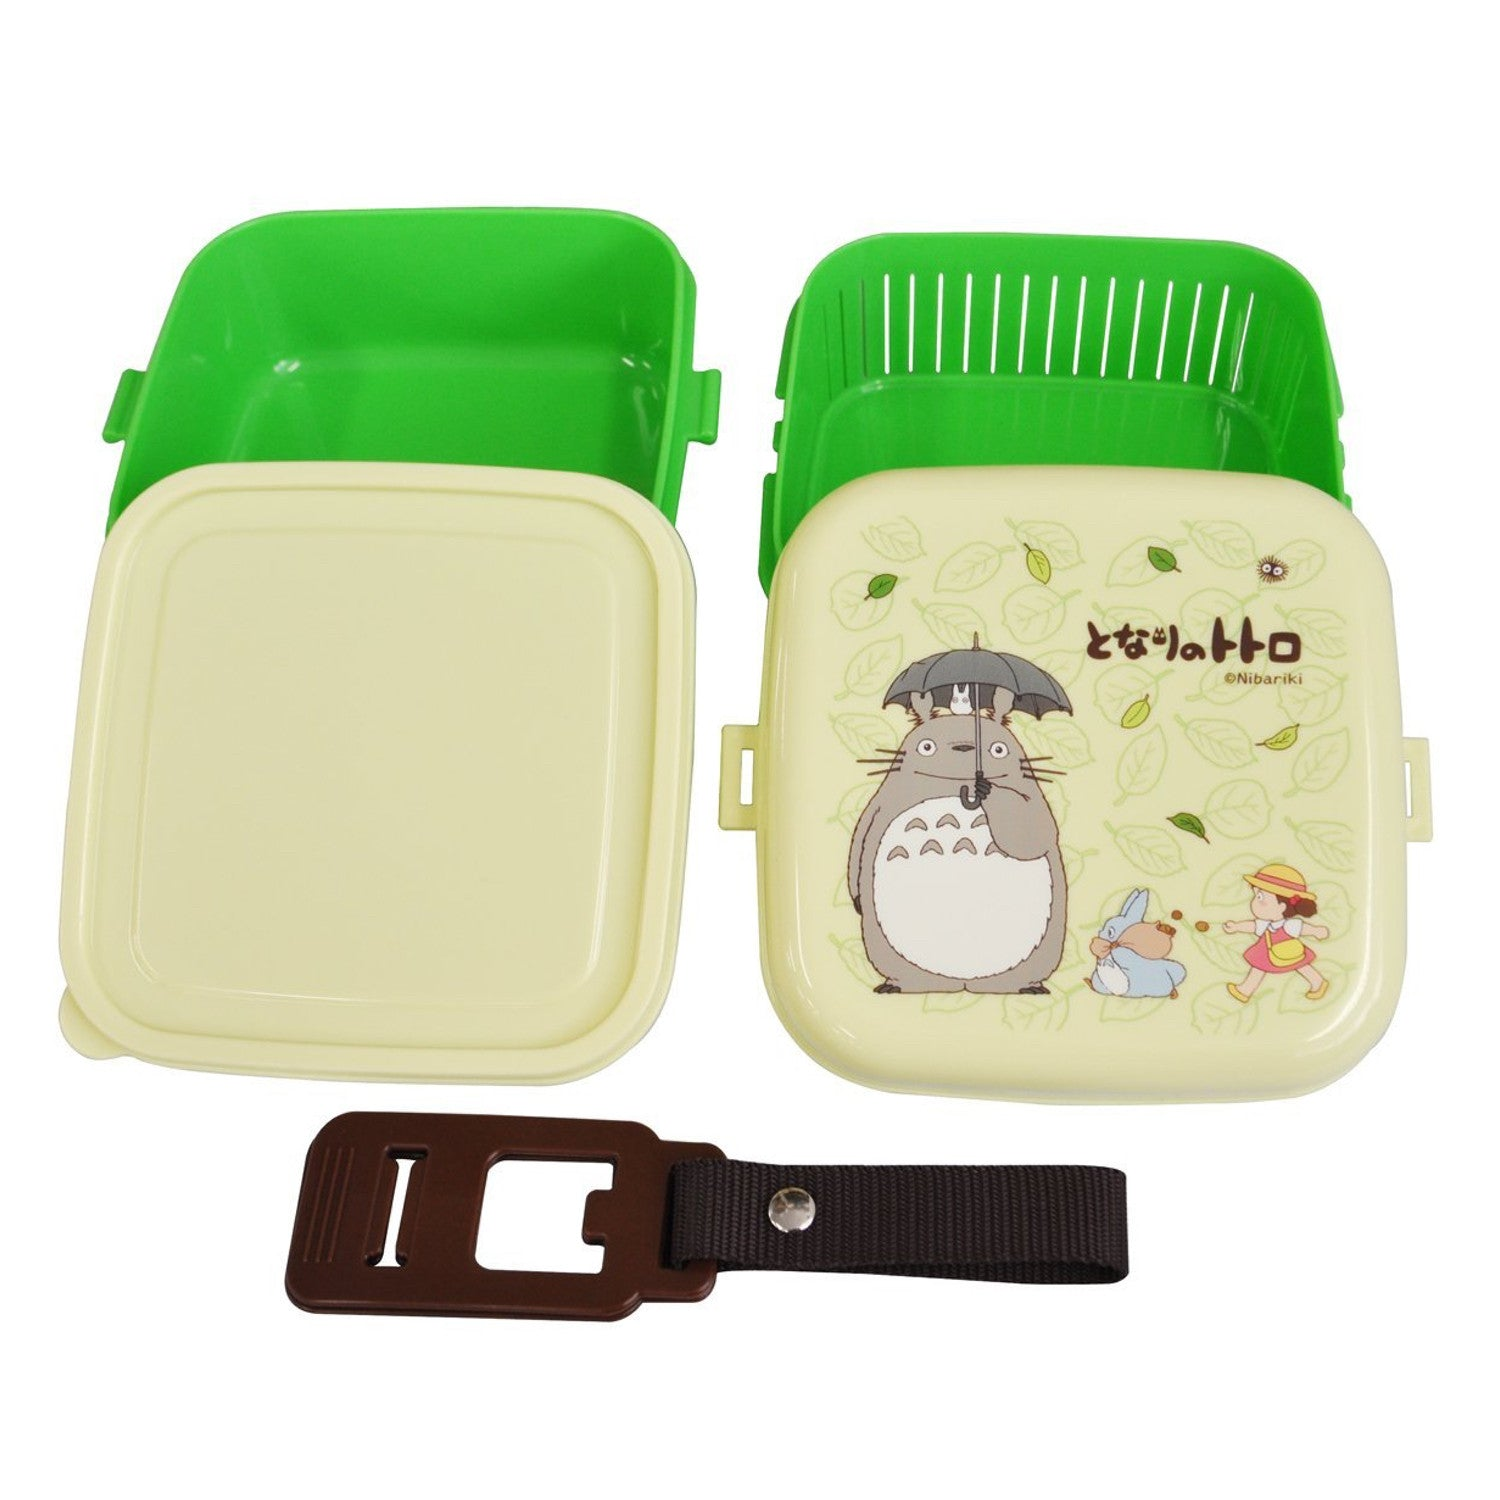 Bento: Studio Ghibli Totoro Design 2-tier Bento Lunch Box (Volume: 620ml + 630ml)